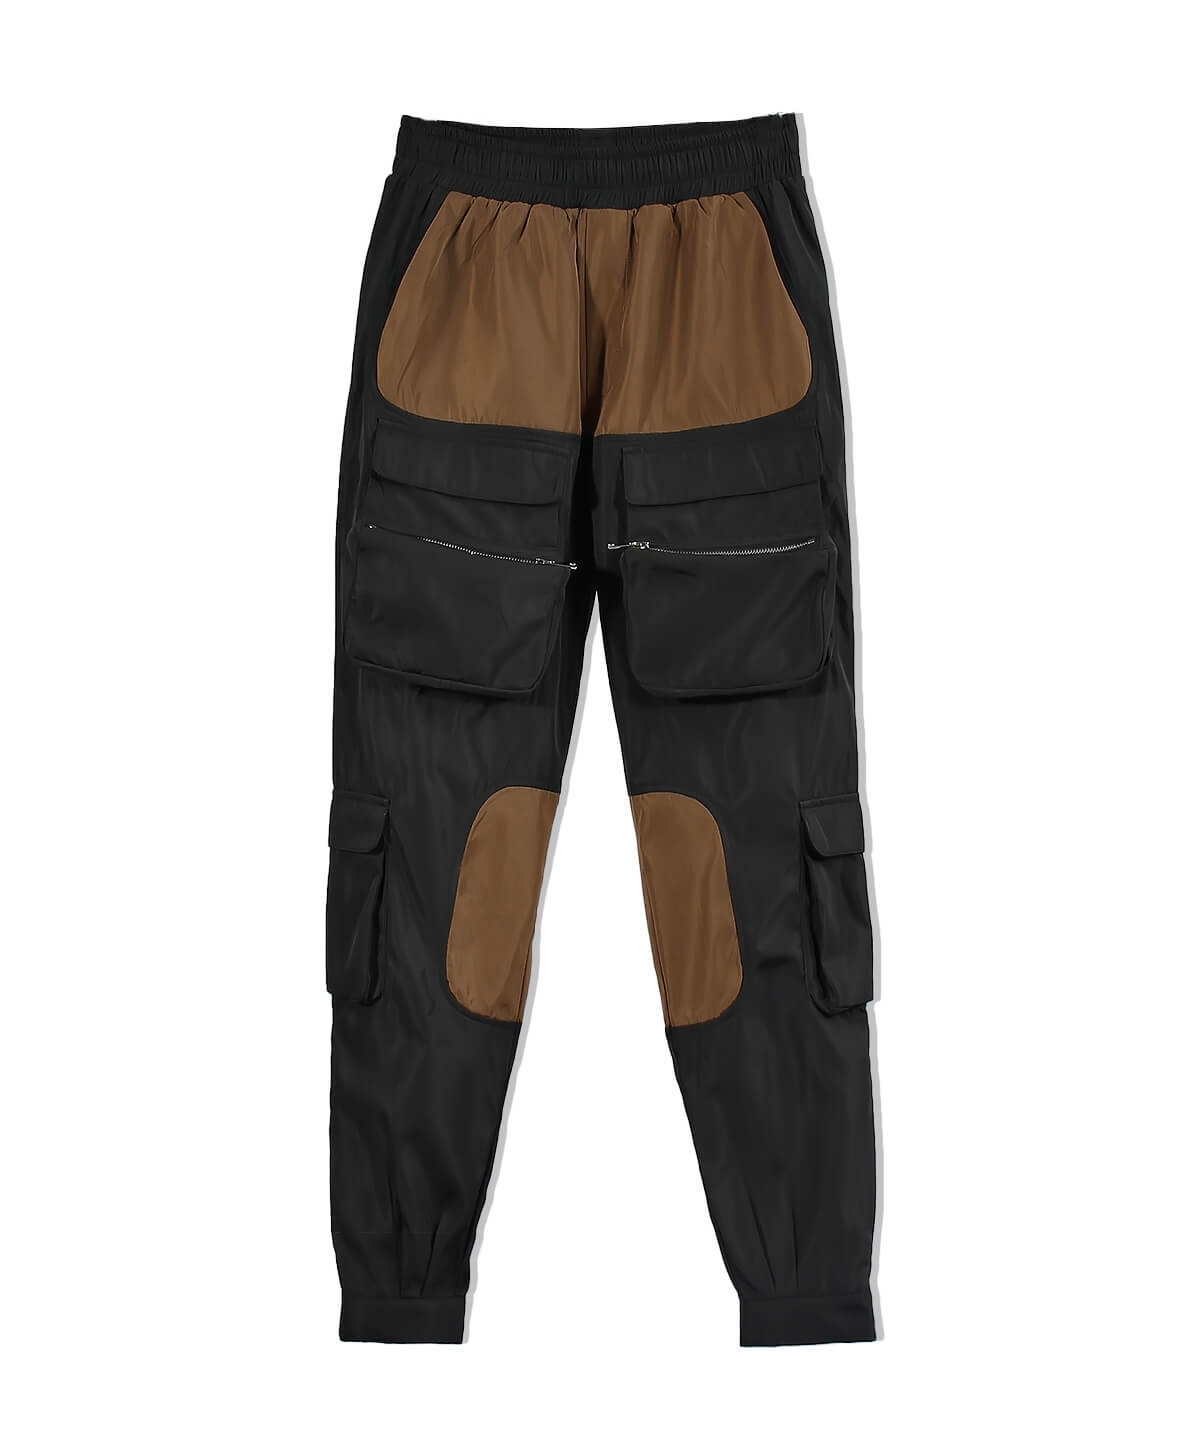 Cargo Pants V11 - Black/Brown